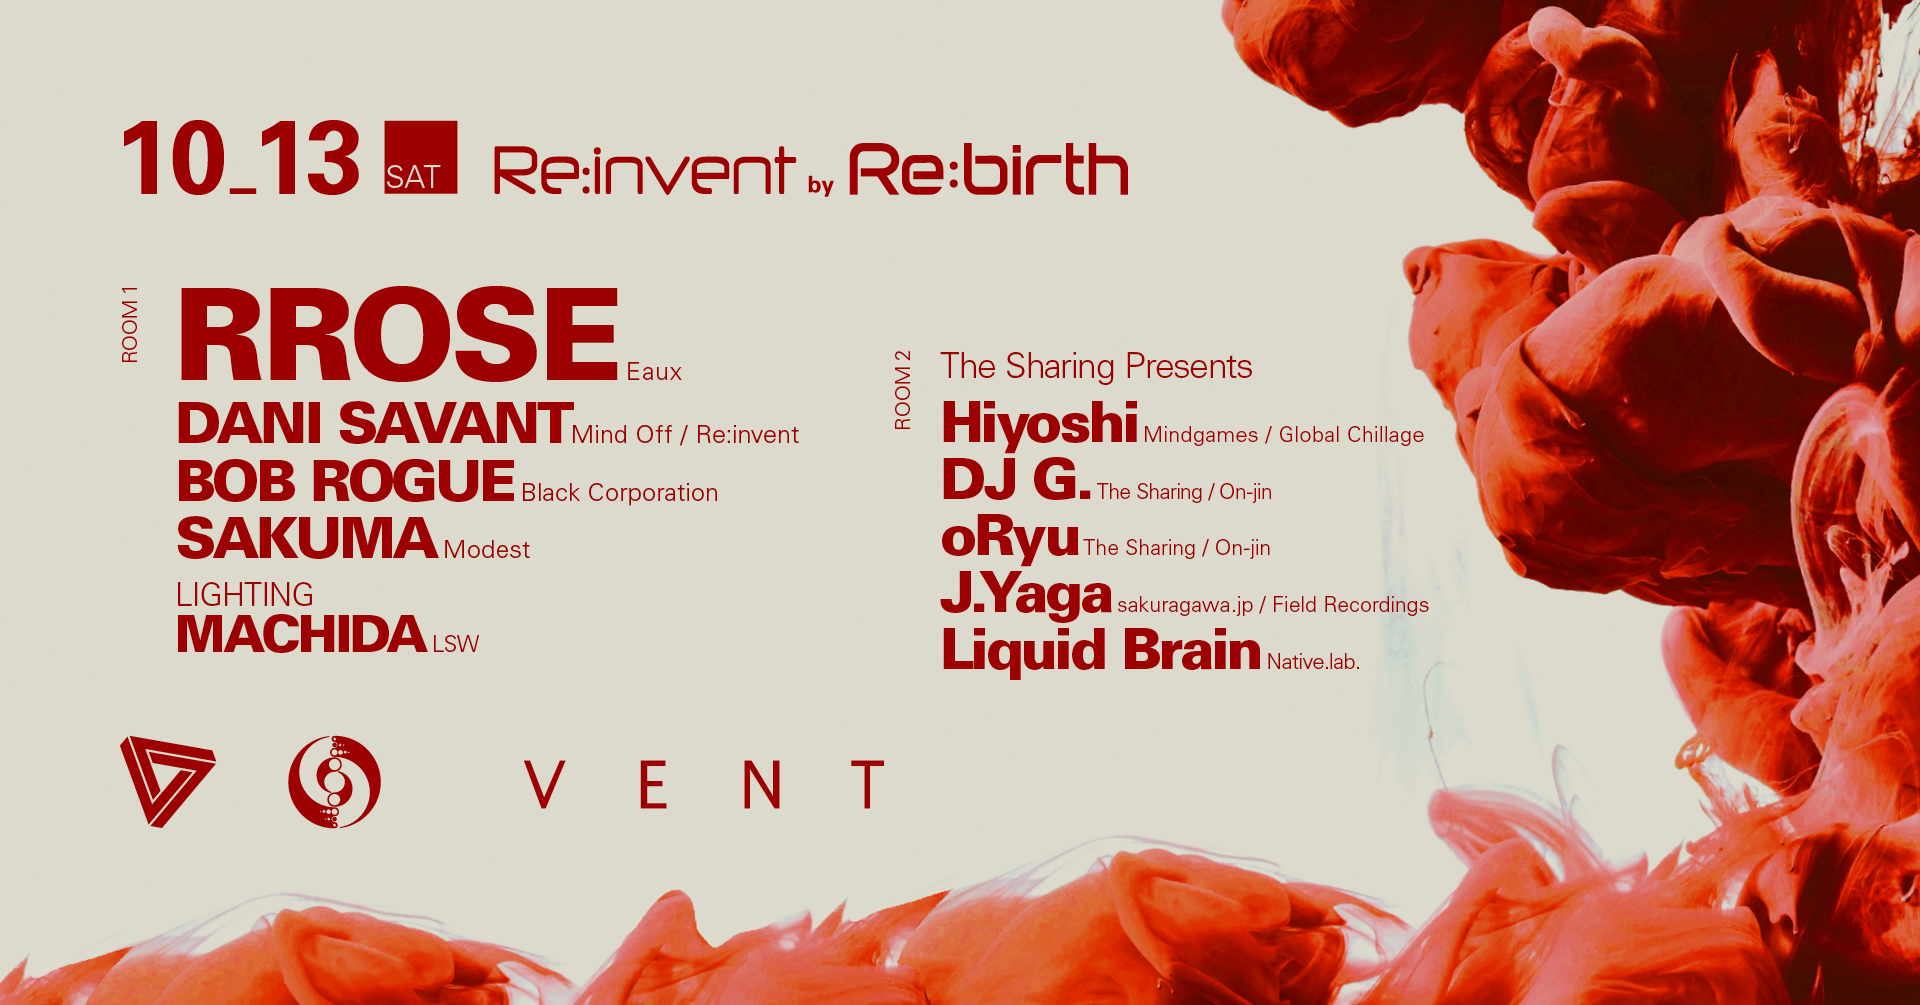 Rrose at Re:invent by Re:birth